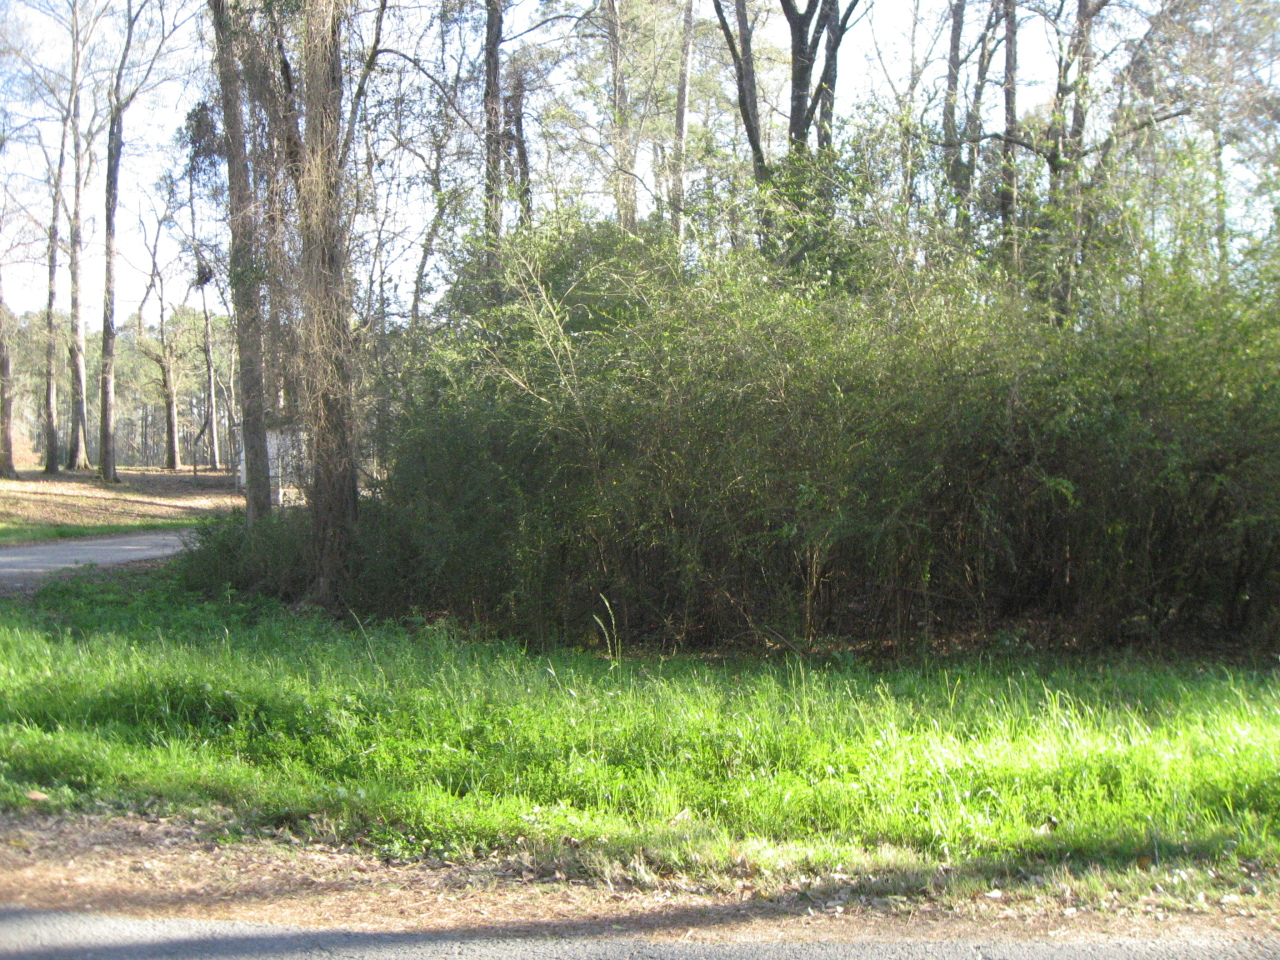 Merryville land for sale,  FRAZAR, Merryville LA - $15,000